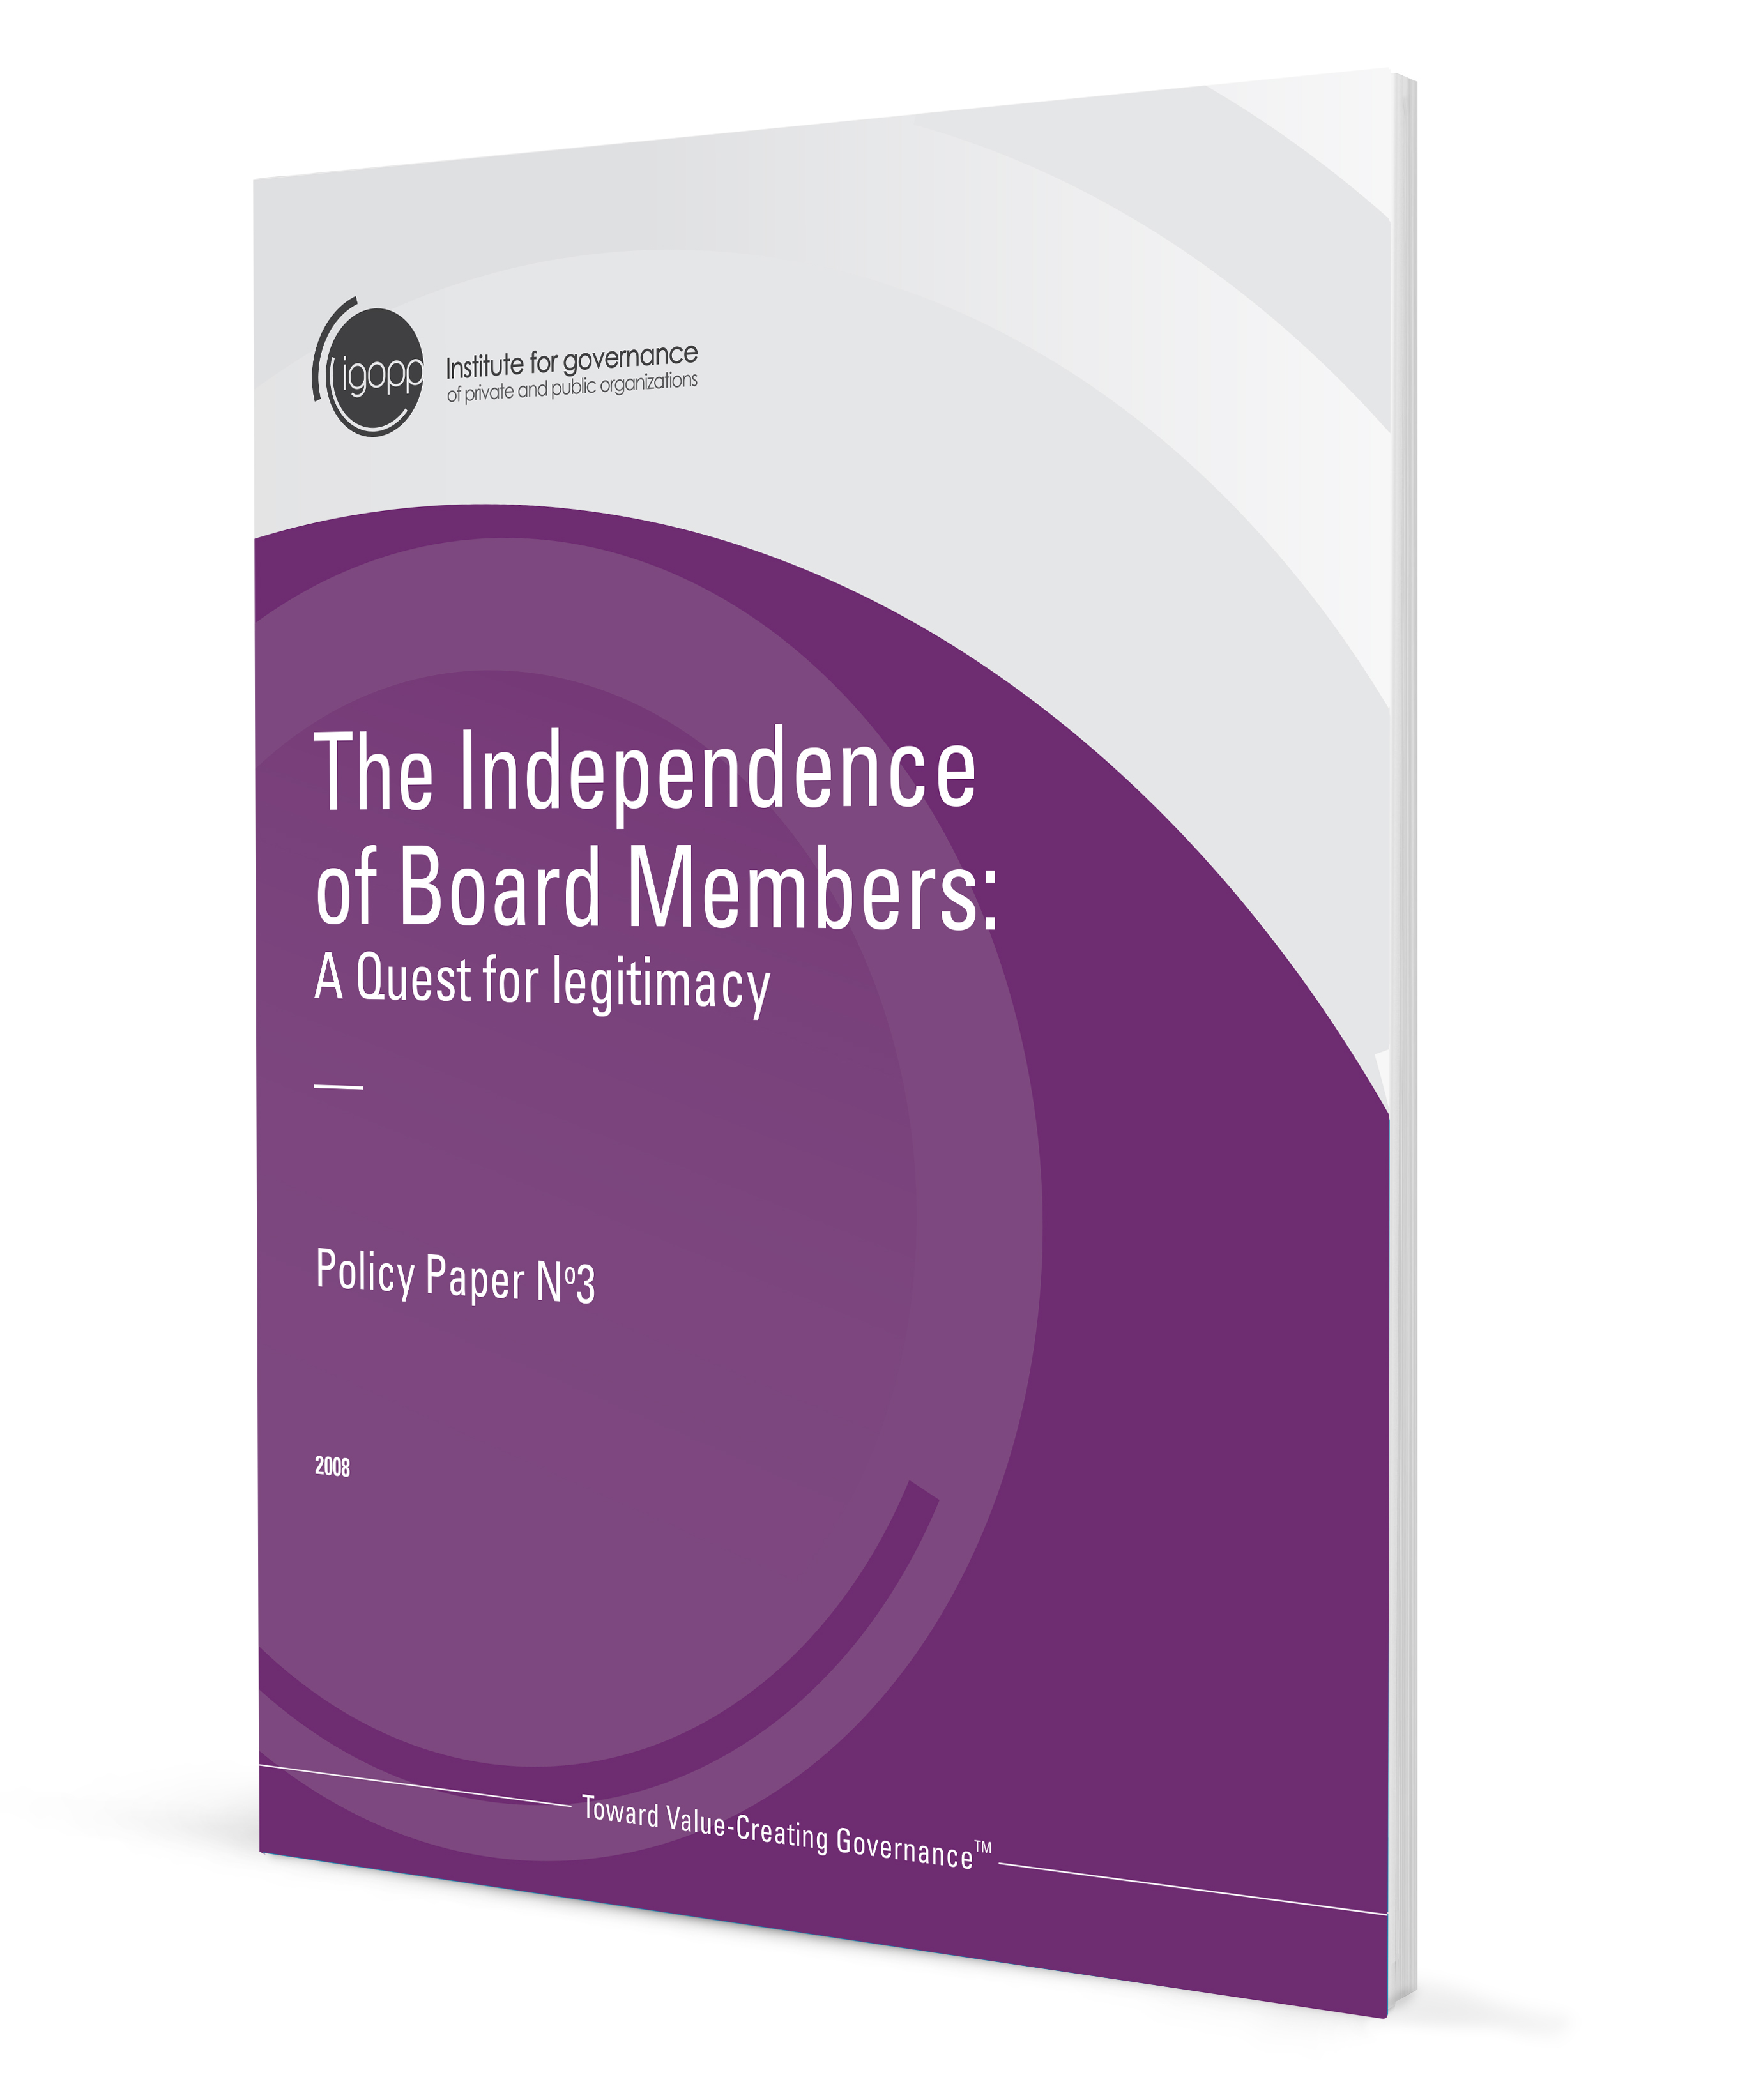 The Independence of Board Members